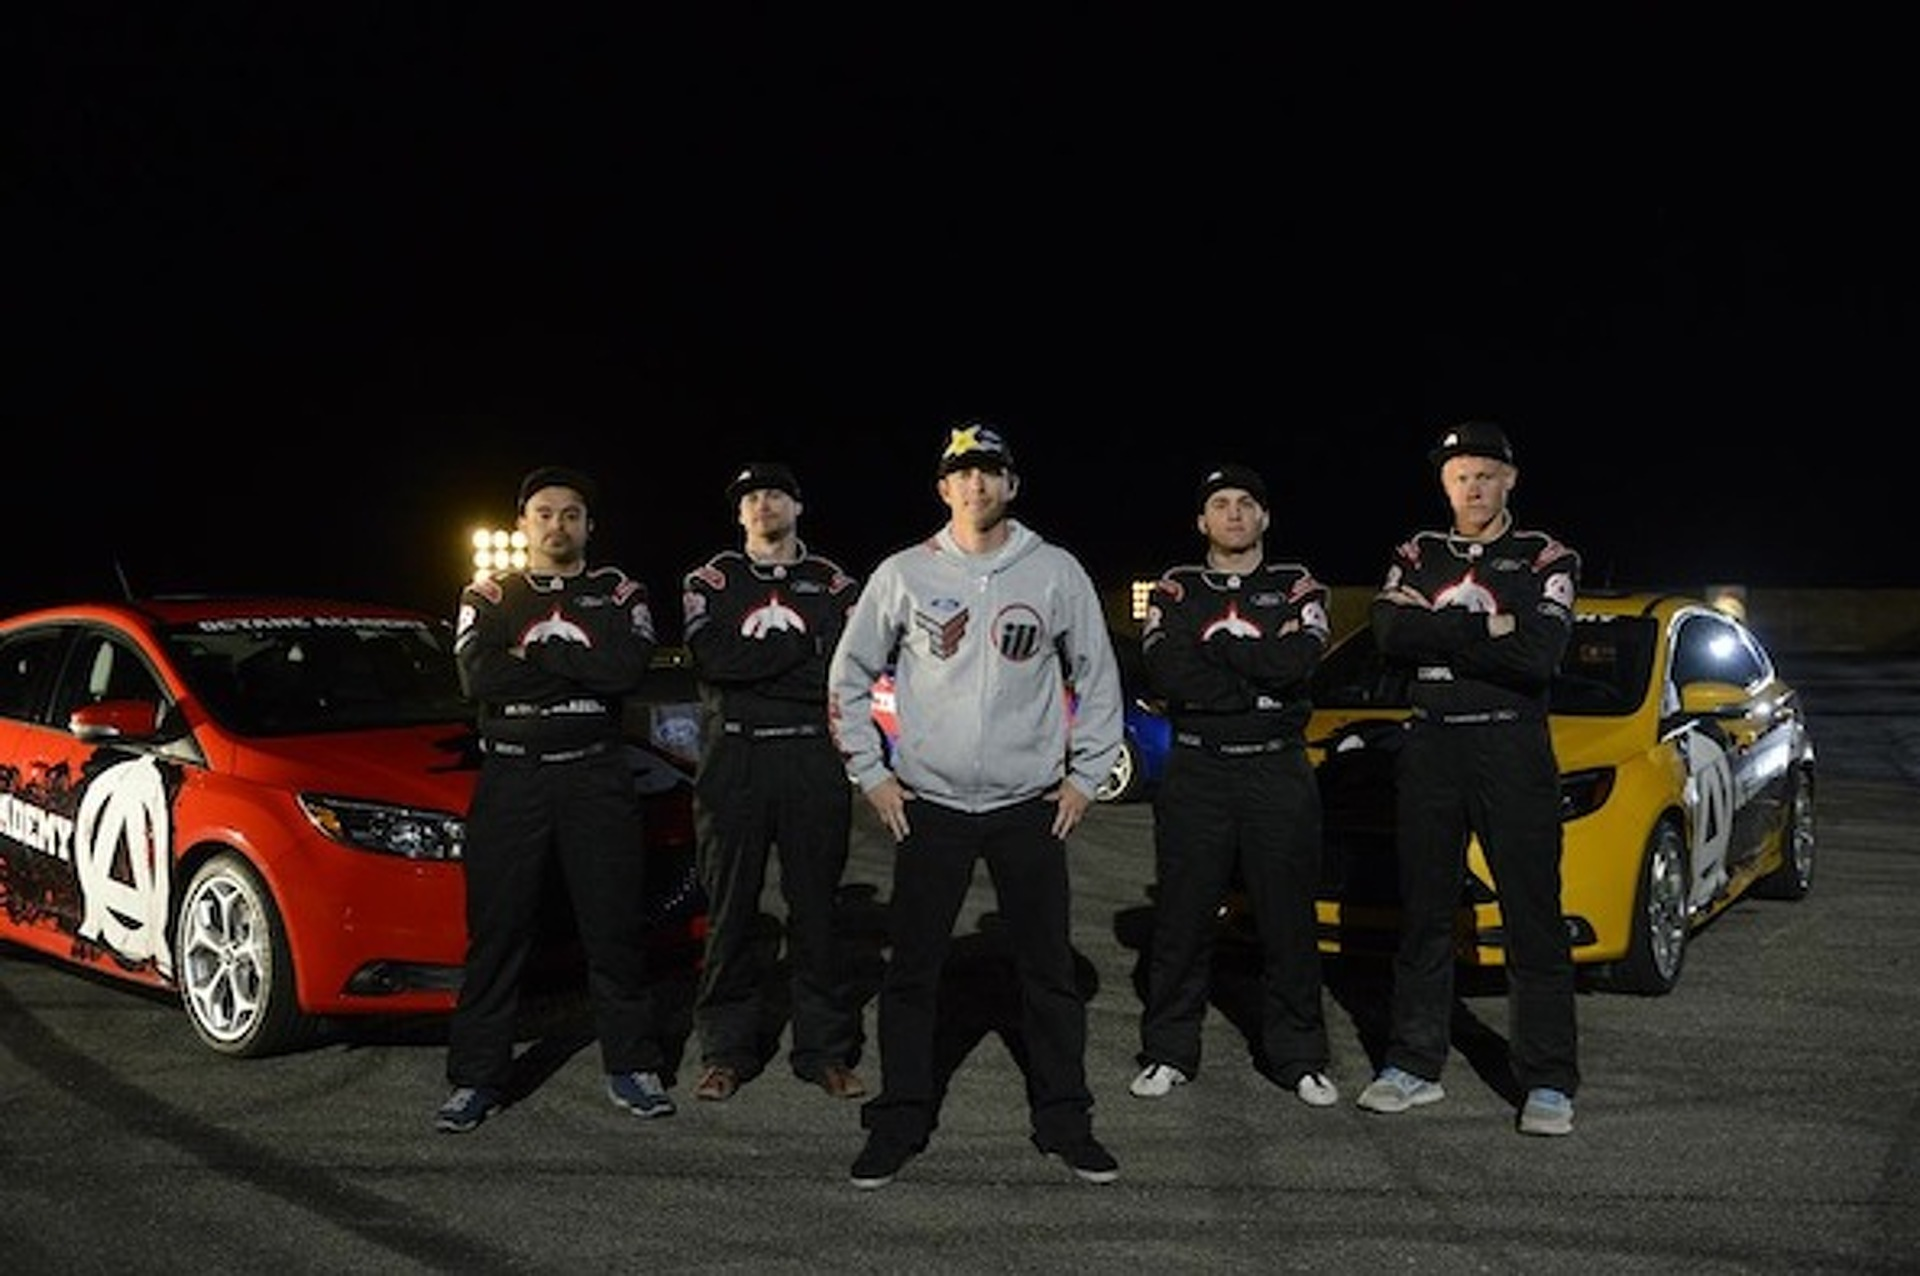 Tanner Foust Teams Up with Driver for Octane Academy Season 2